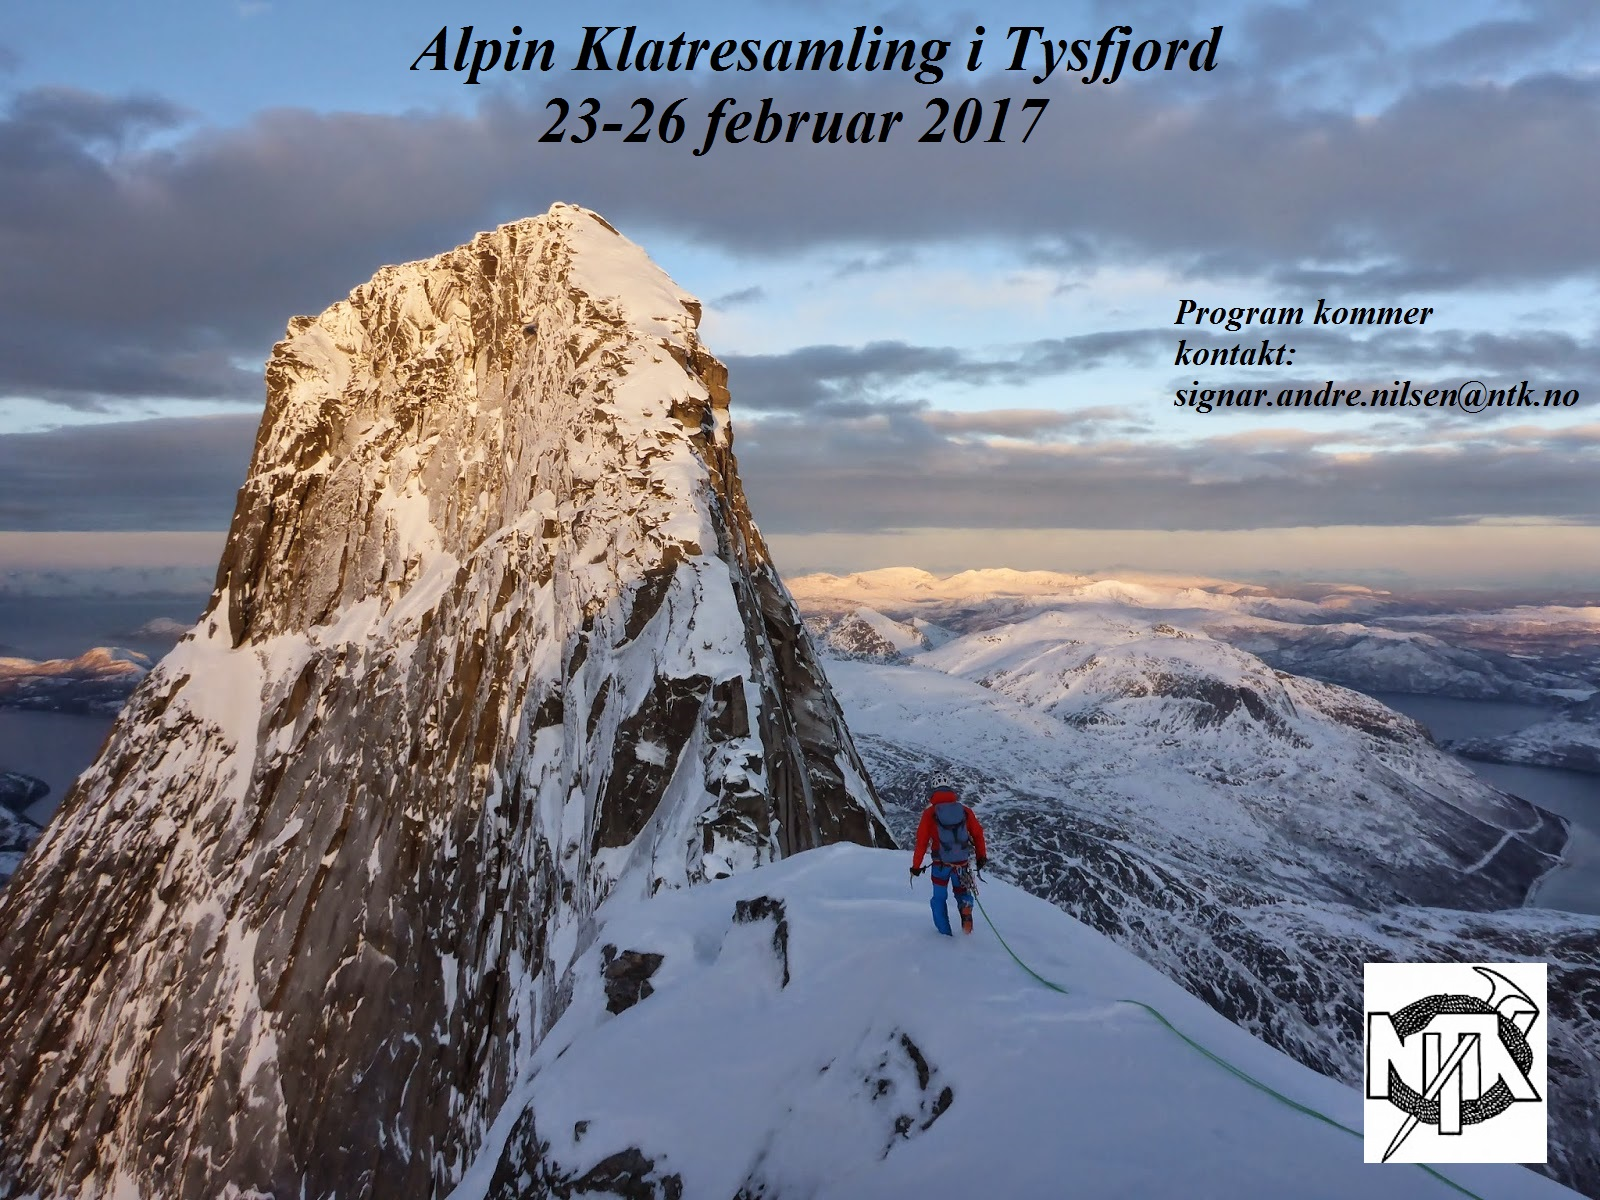 ntk-flyer-alpinsamling17